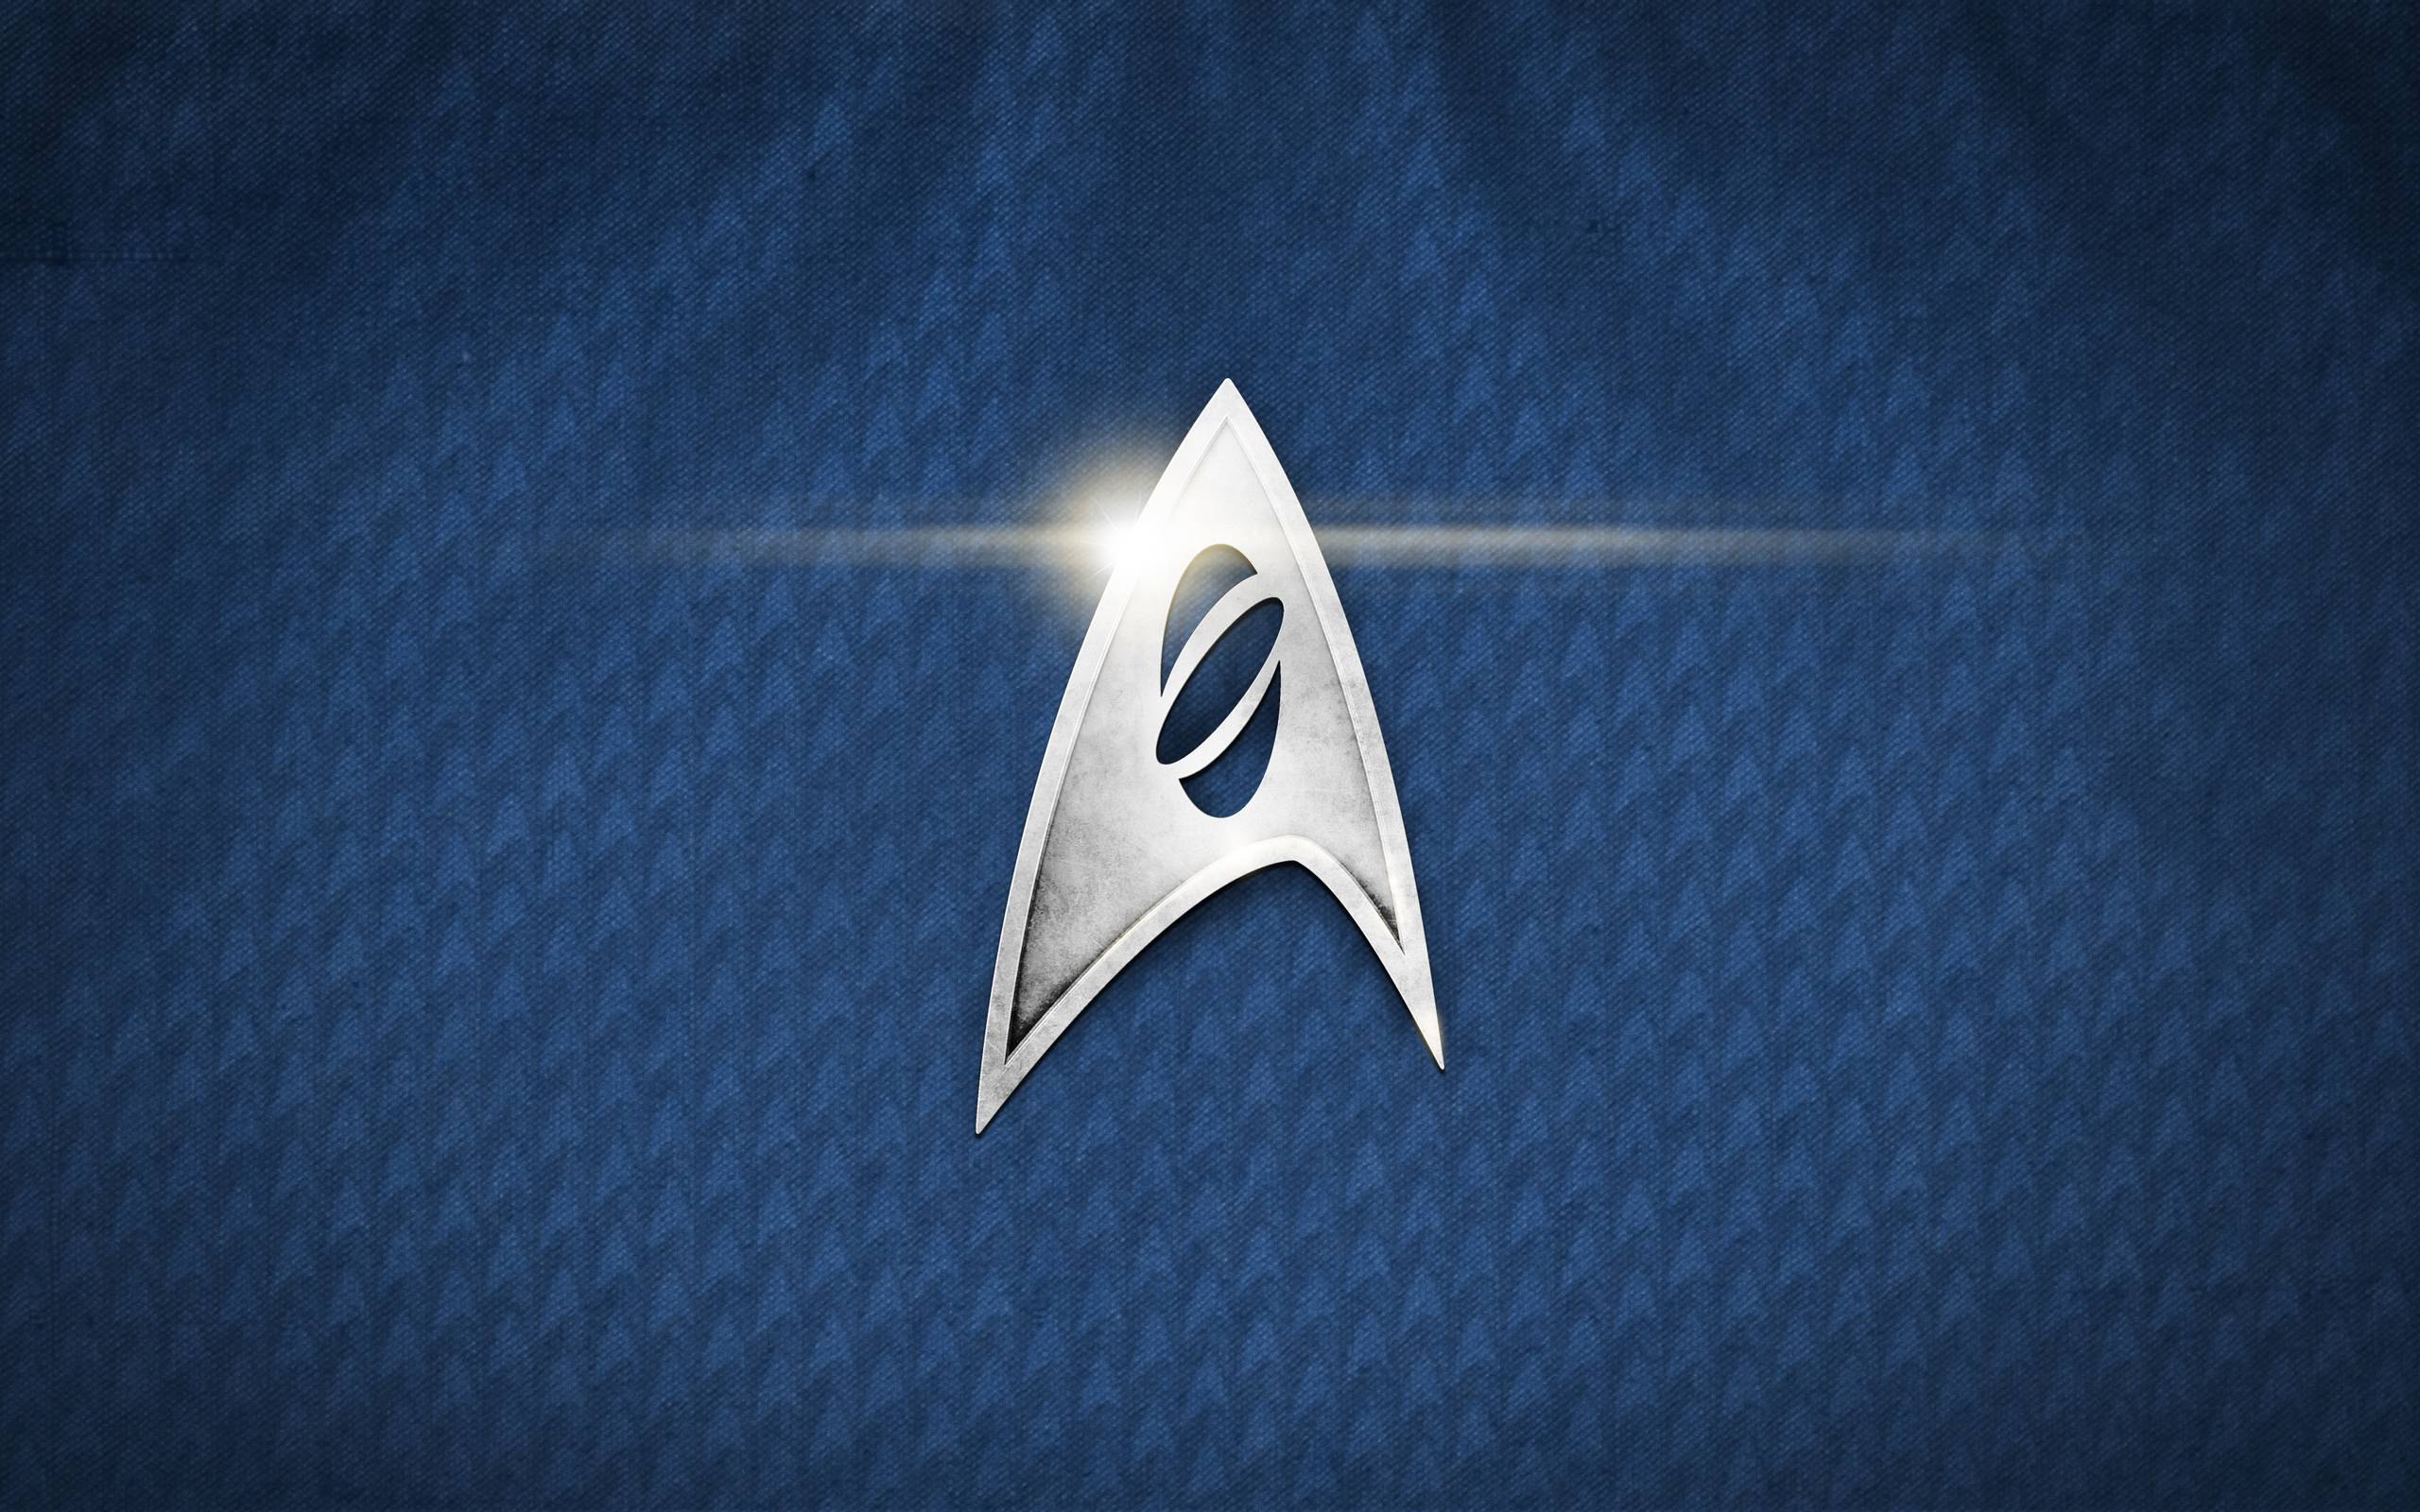 Star Trek Insignia Wallpapers Top Free Star Trek Insignia